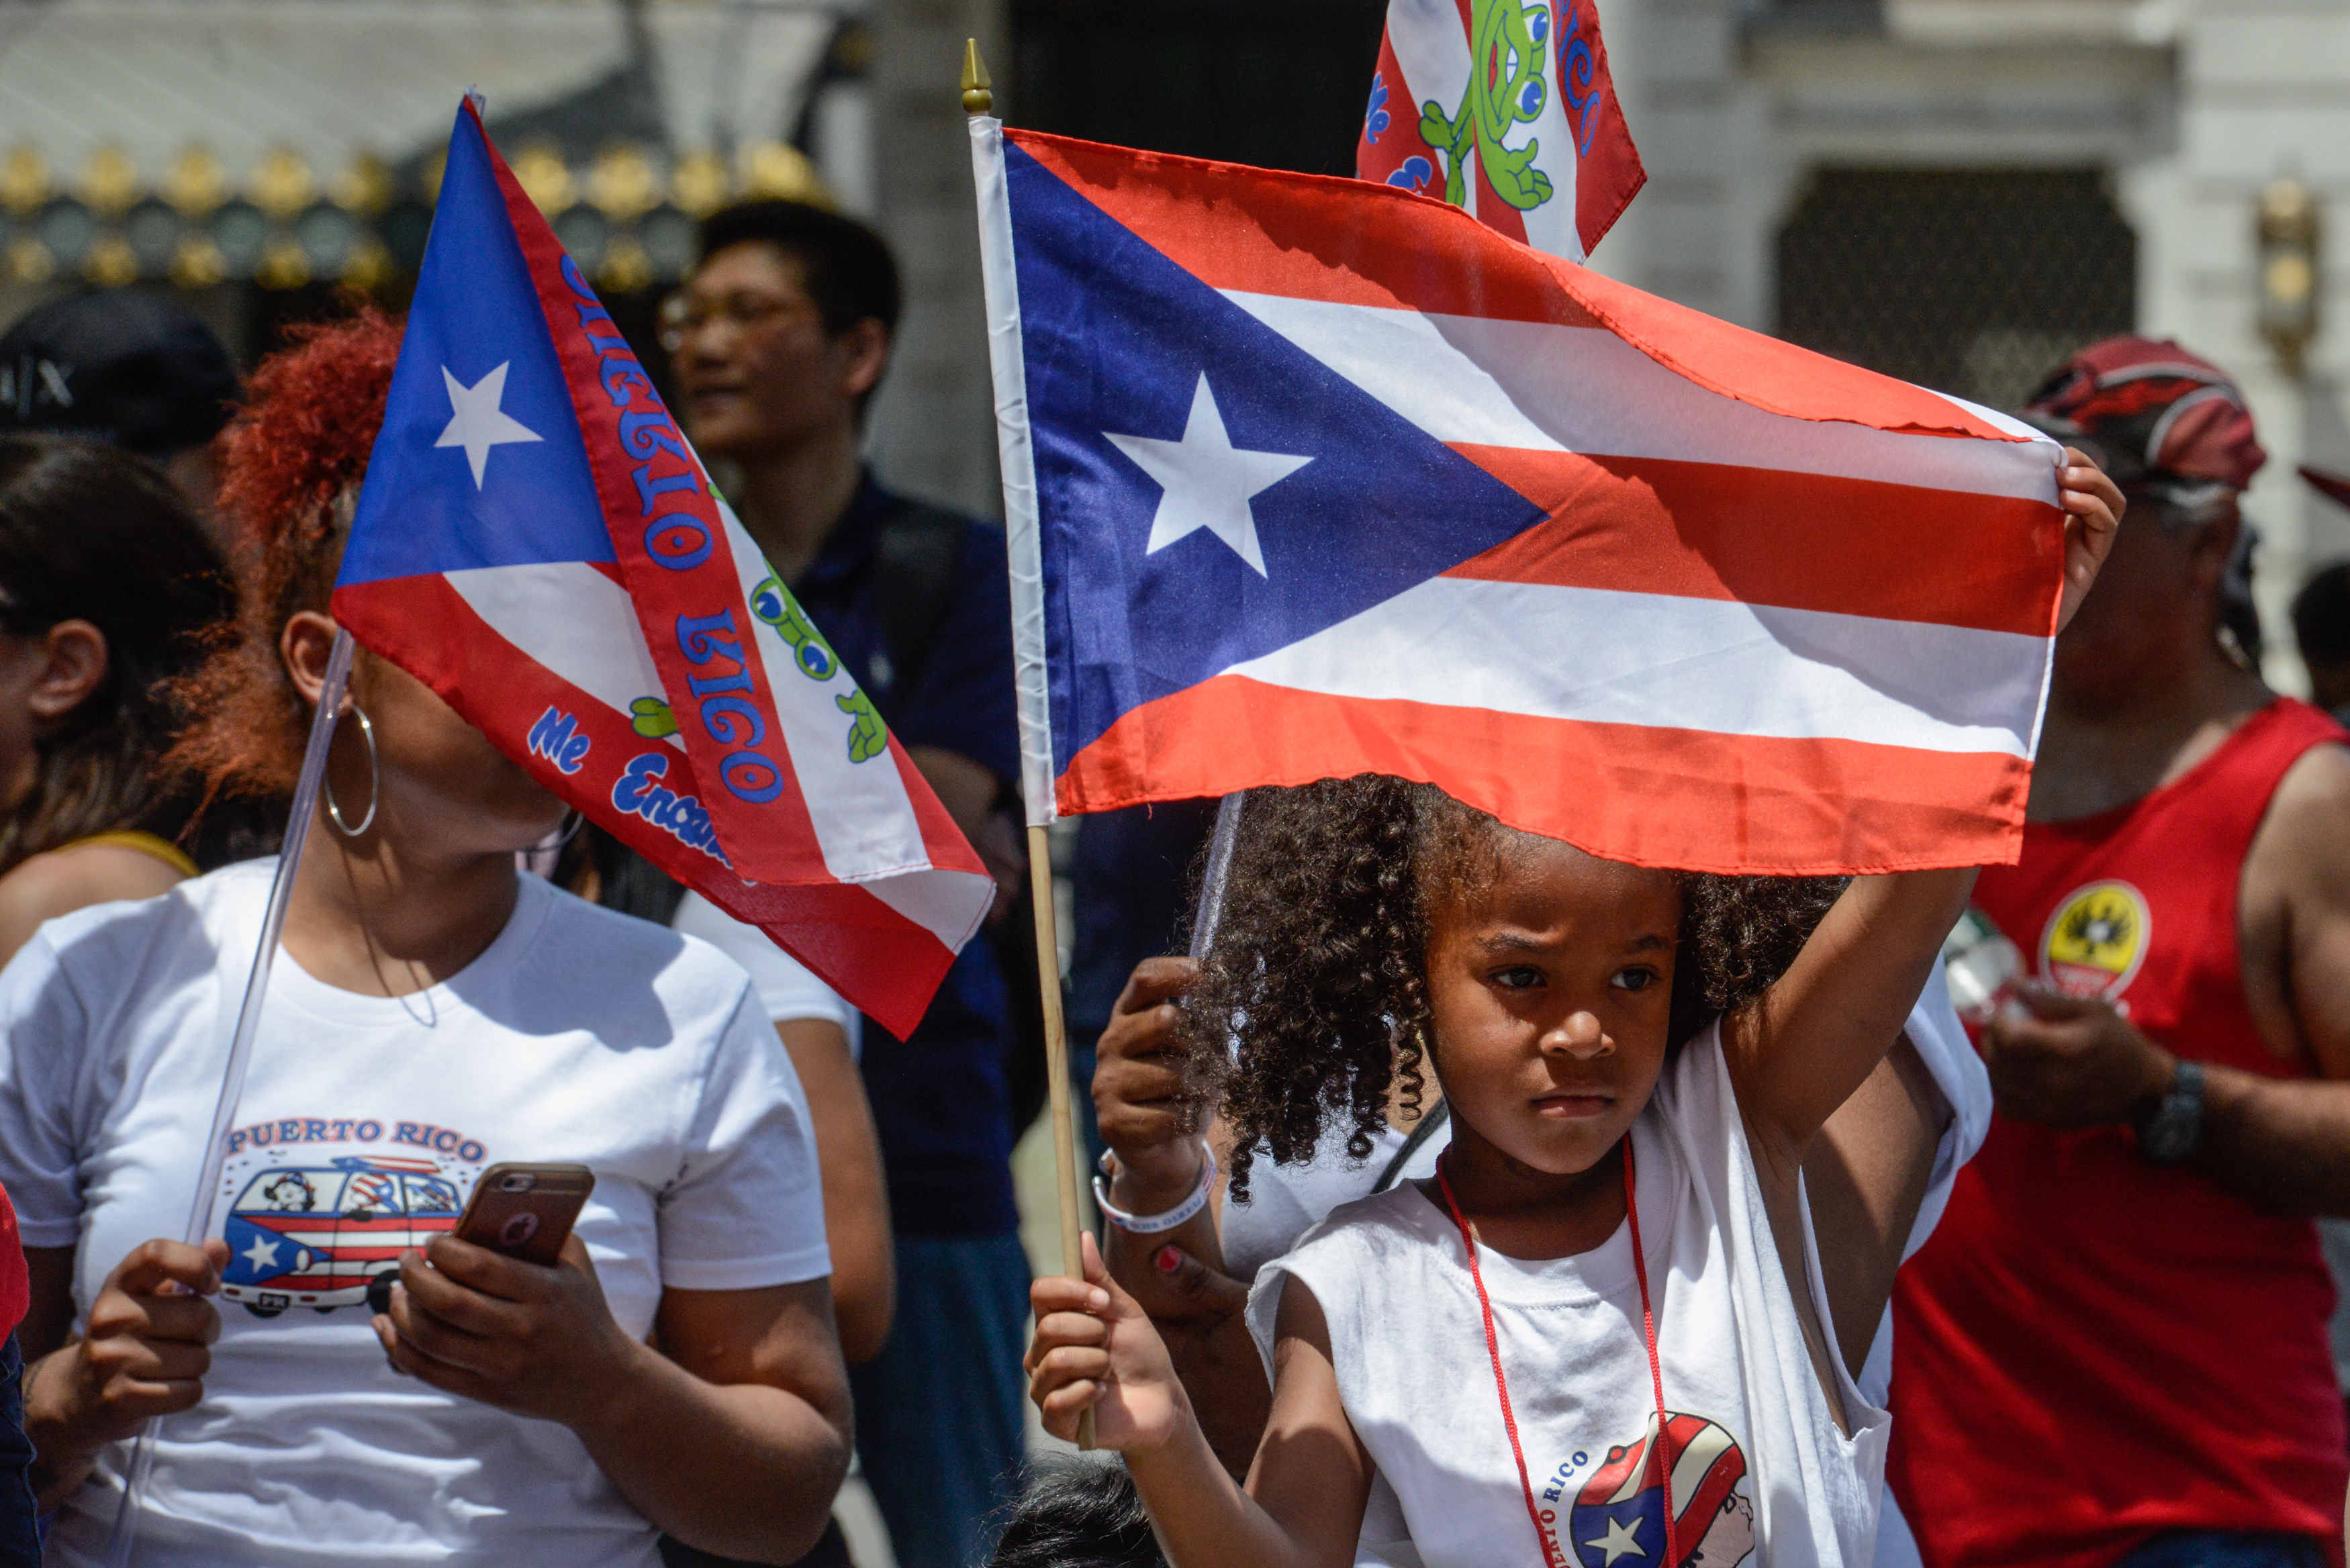 The National Puerto Rican Day Parade Has Been Postponed to God Knows When